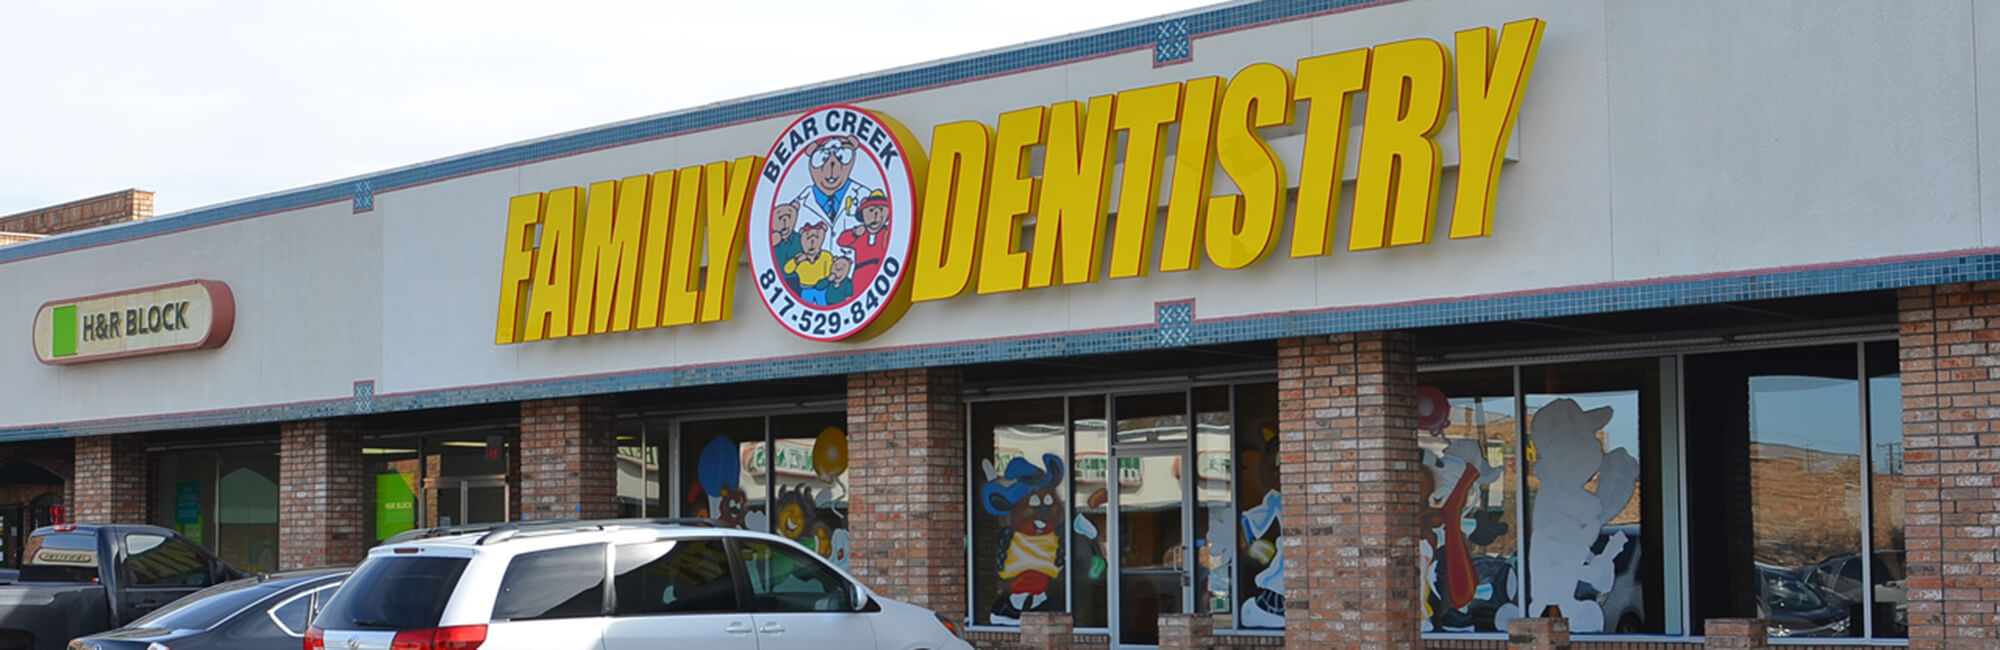 Our Town North Location   Bear Creek Family Dentistry